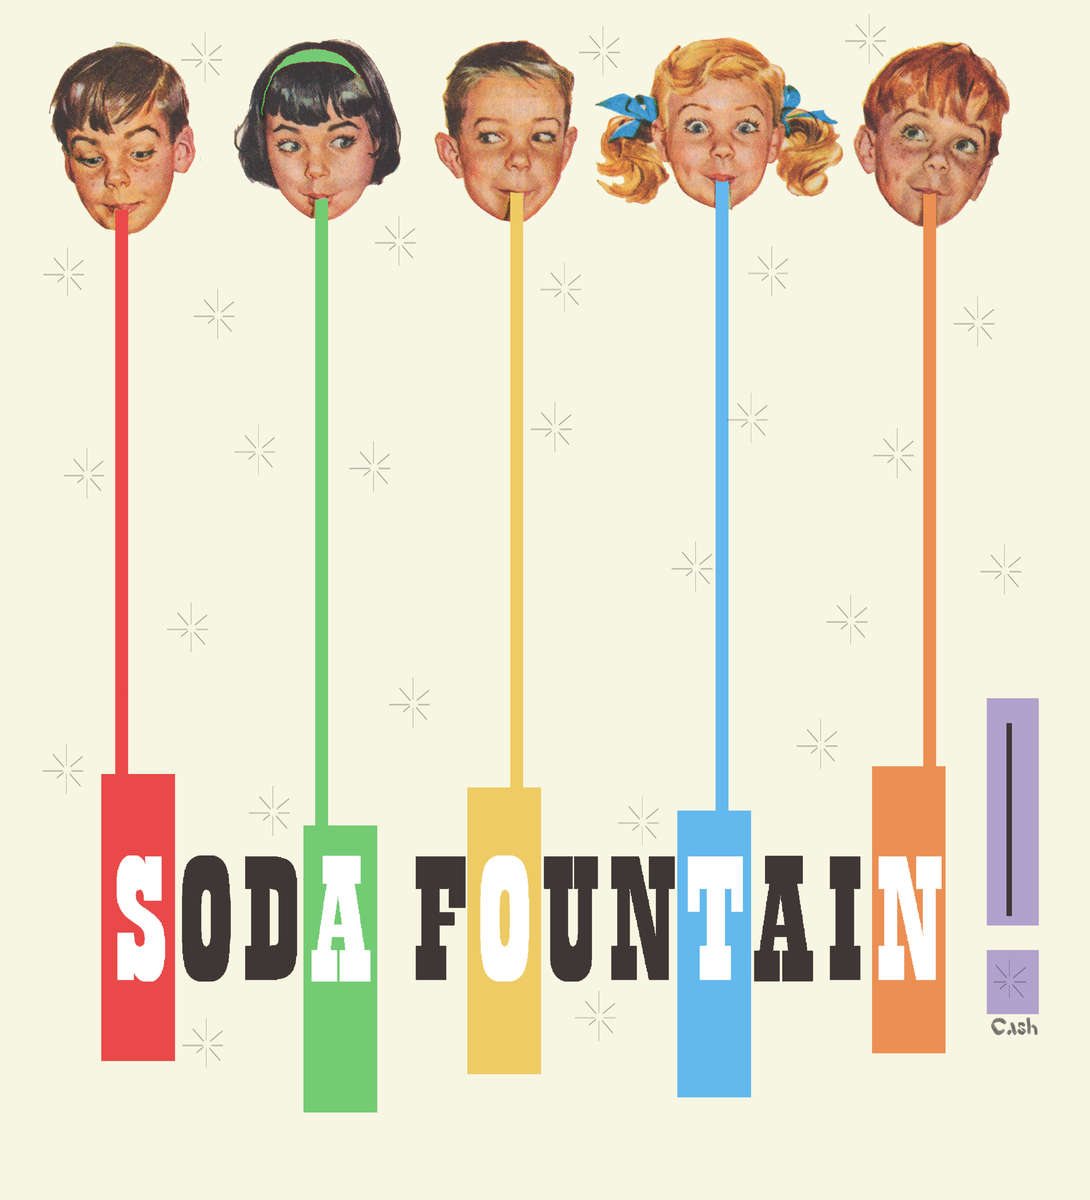 ECash-soda-fountain-2